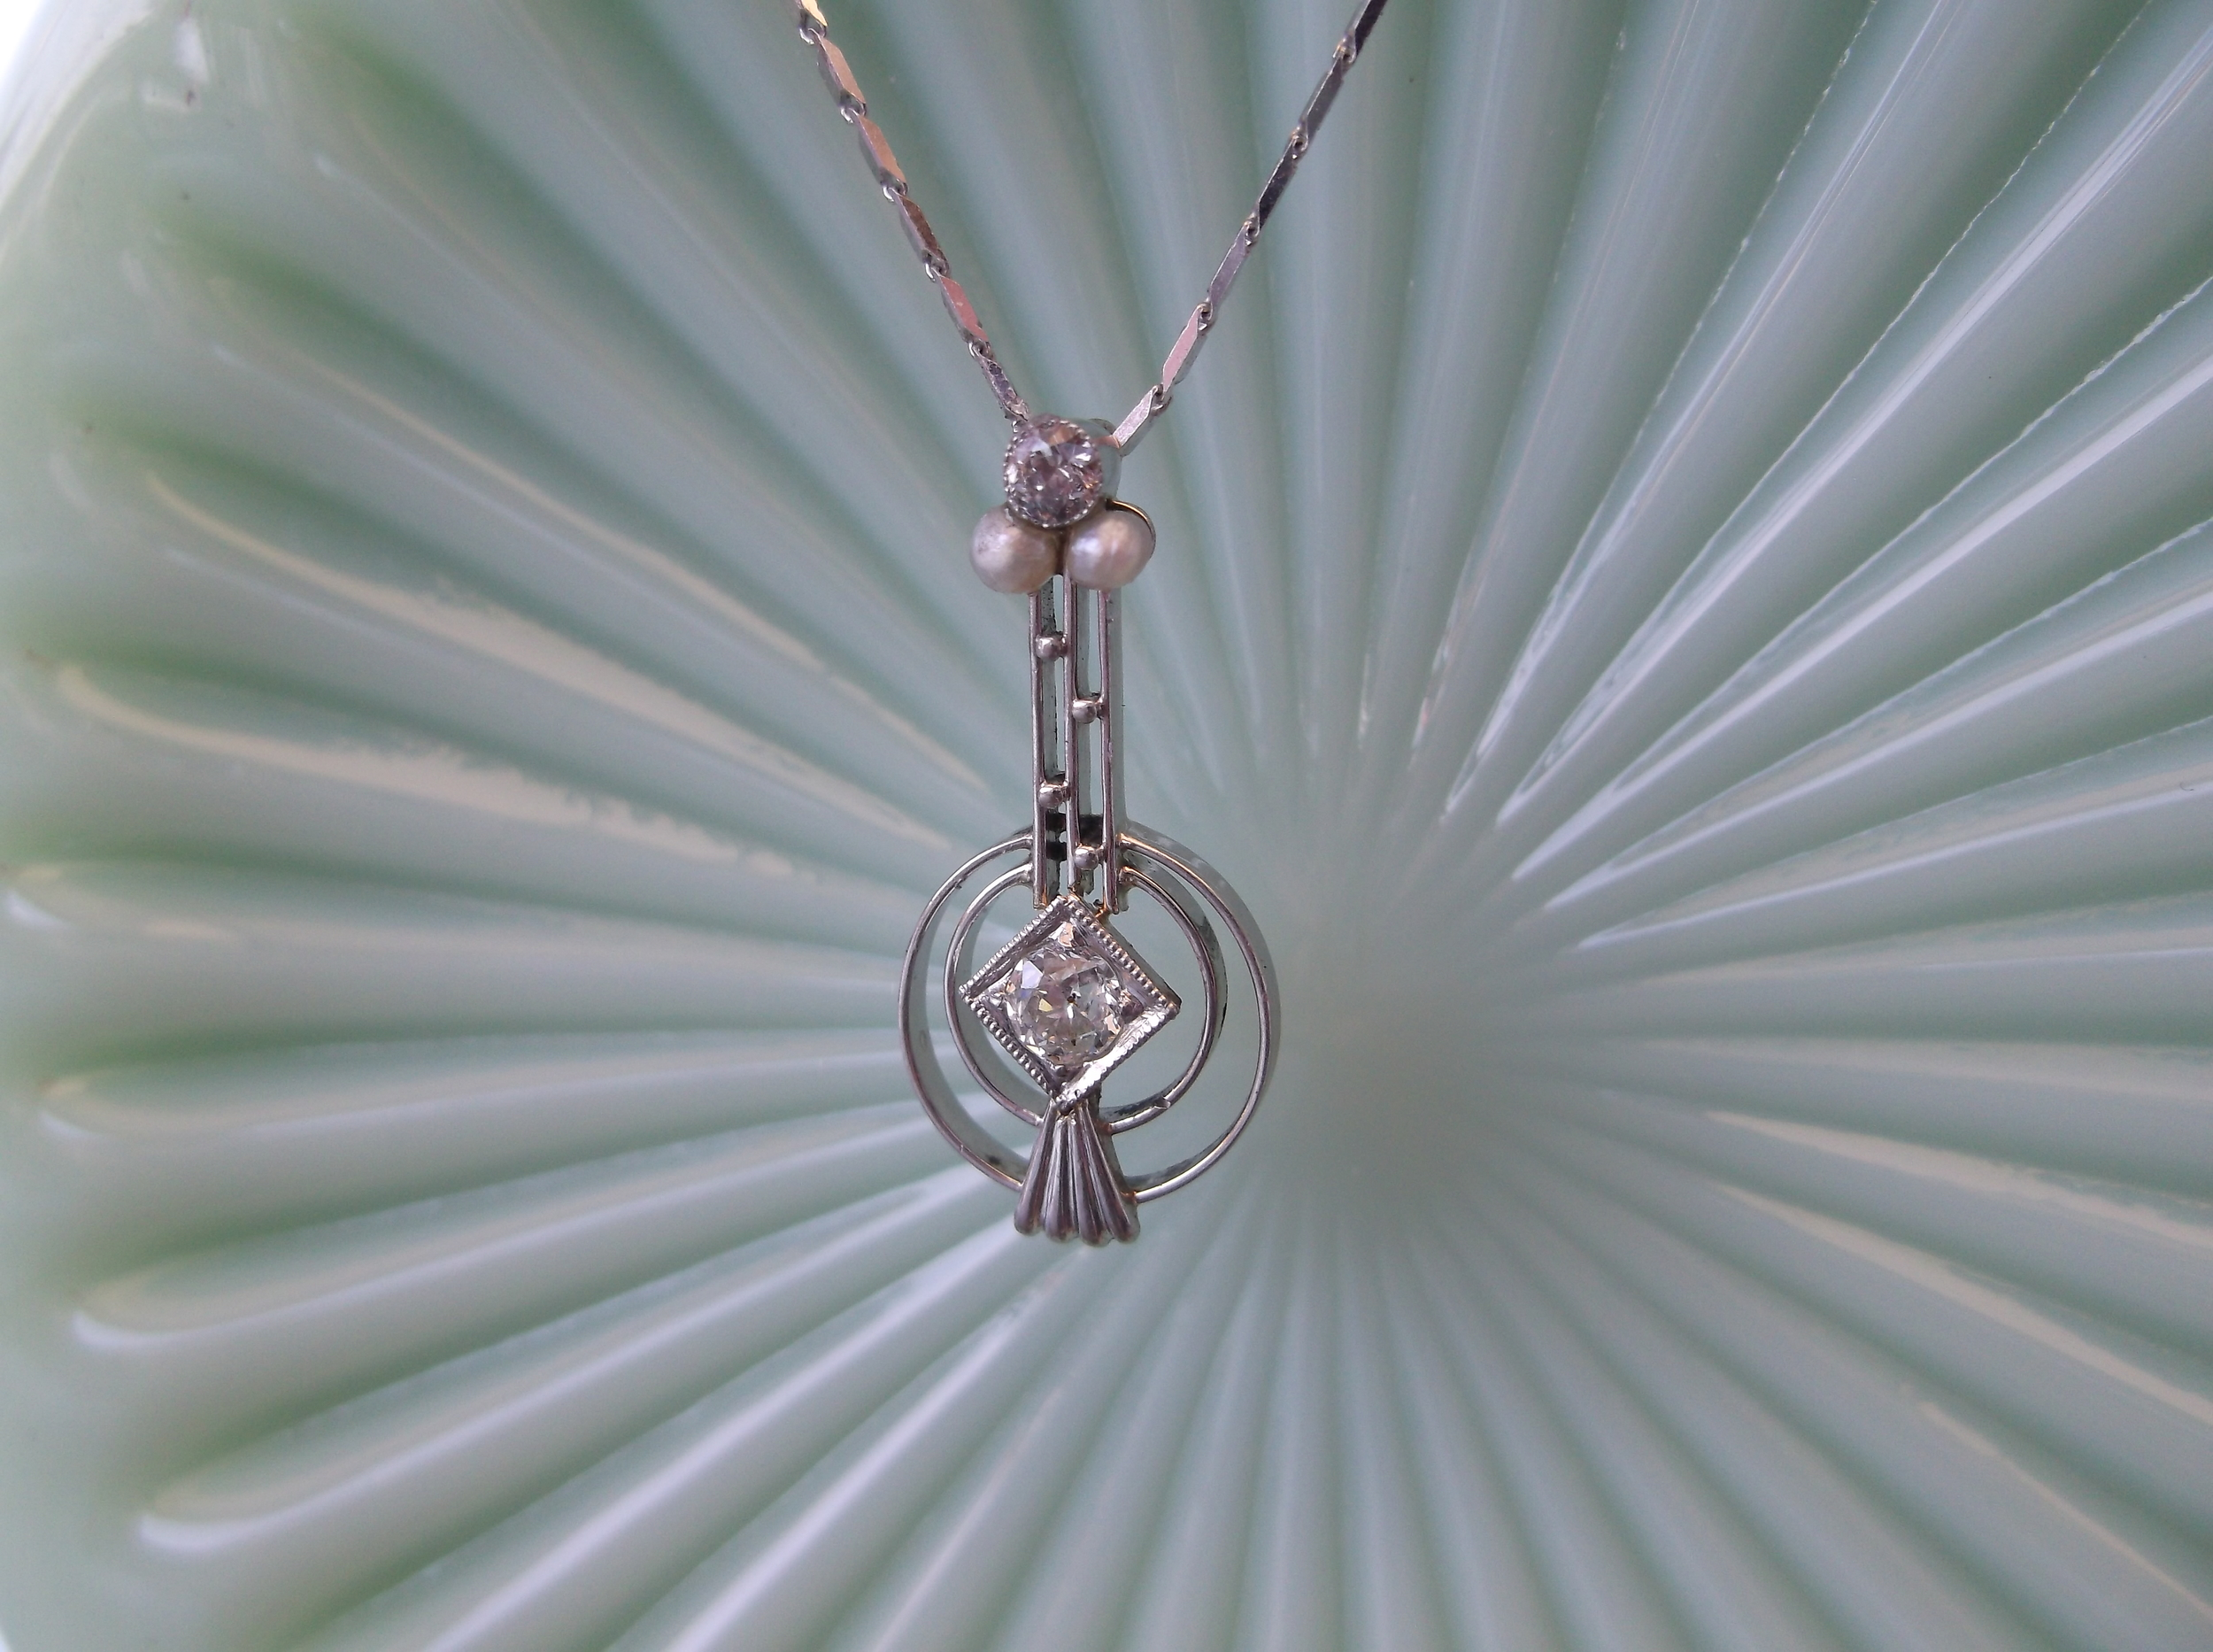 SOLD - Beautiful Art Deco diamond, seed pearl and white gold pendant